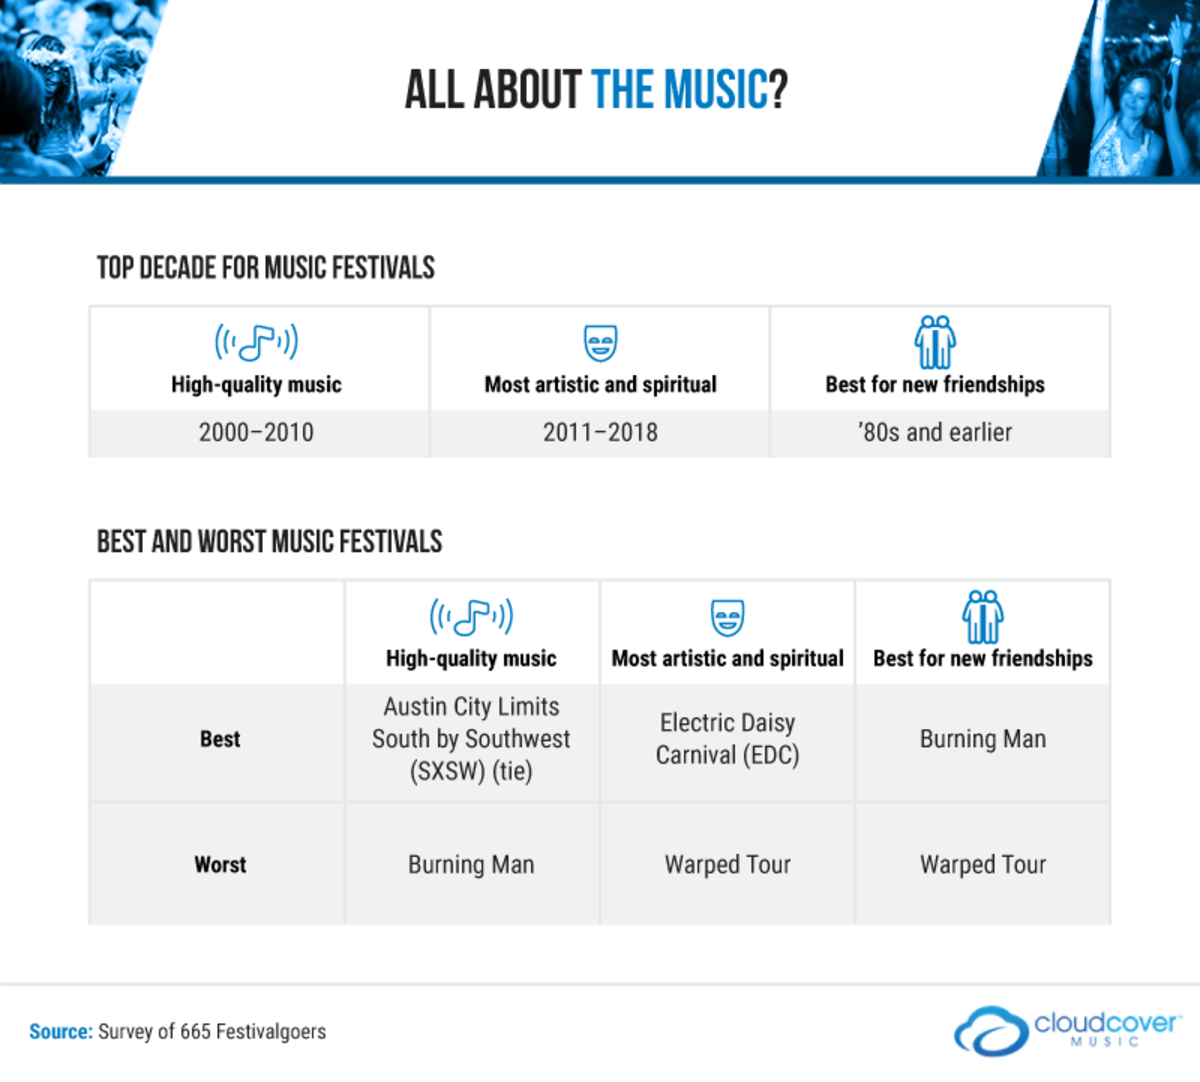 An infographic on music festival experiences funded by Cloud Cover Music.